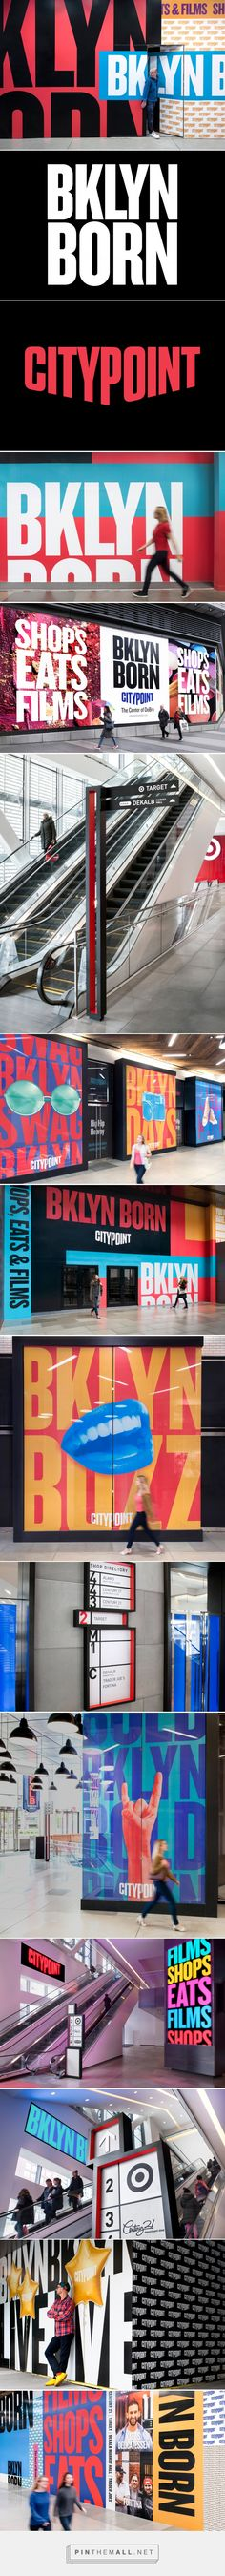 City Point - Brand Identity, Wayfinding, and Campaign on Behance... - a grouped images picture - Pin Them All